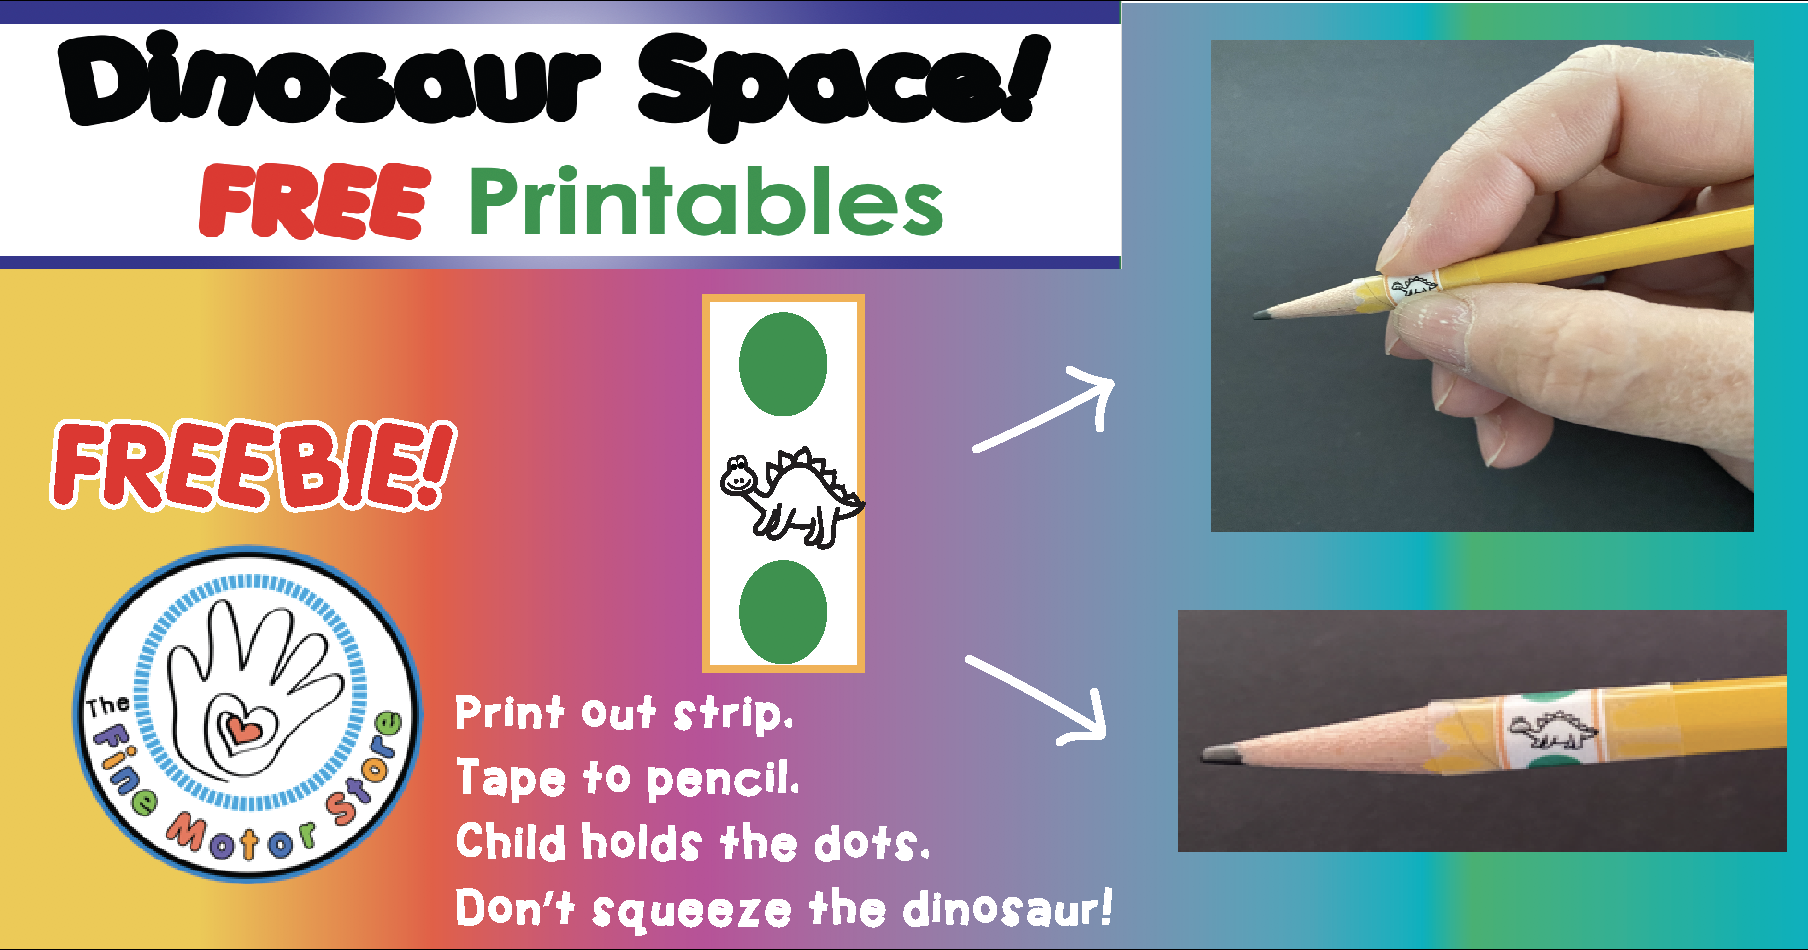 FREE Dinosaur Printable and Warm-ups for HOW TO HOLD A PENCIL!